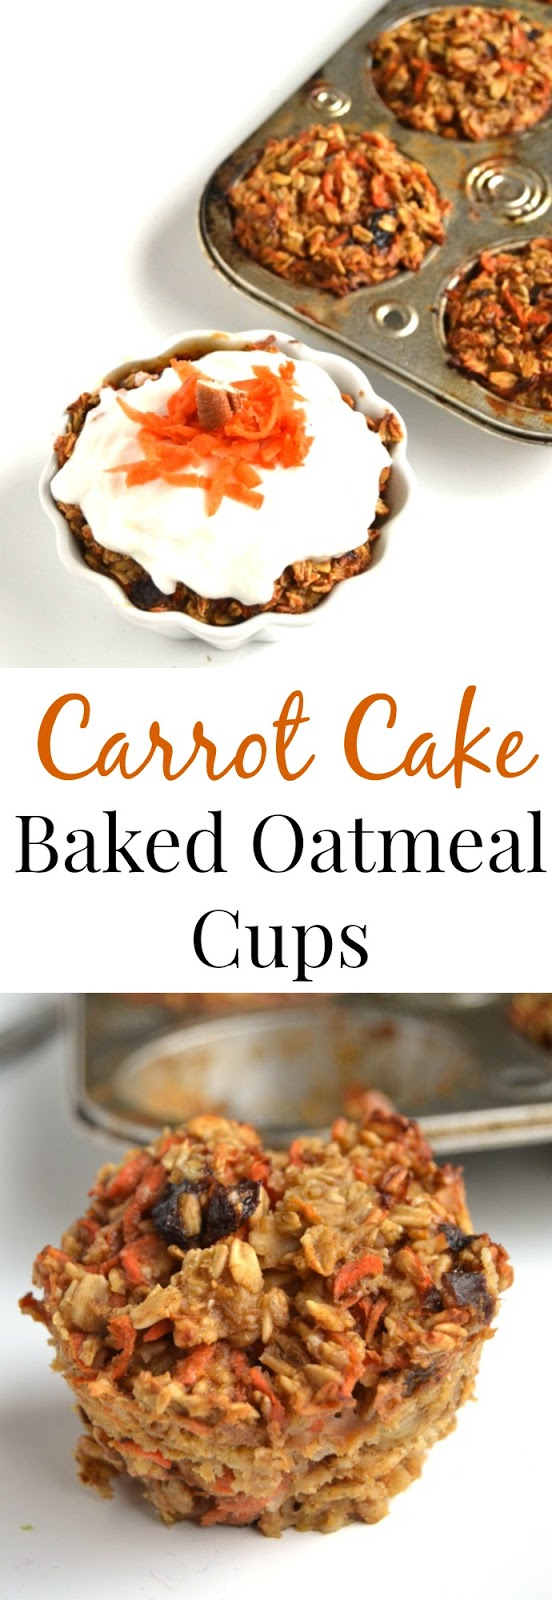 If you are a carrot cake lover, try these Carrot Cake Baked Oatmeal Cups with healthy cream cheese frosting for a healthy and satisfying breakfast! www.nutritionistreviews.com